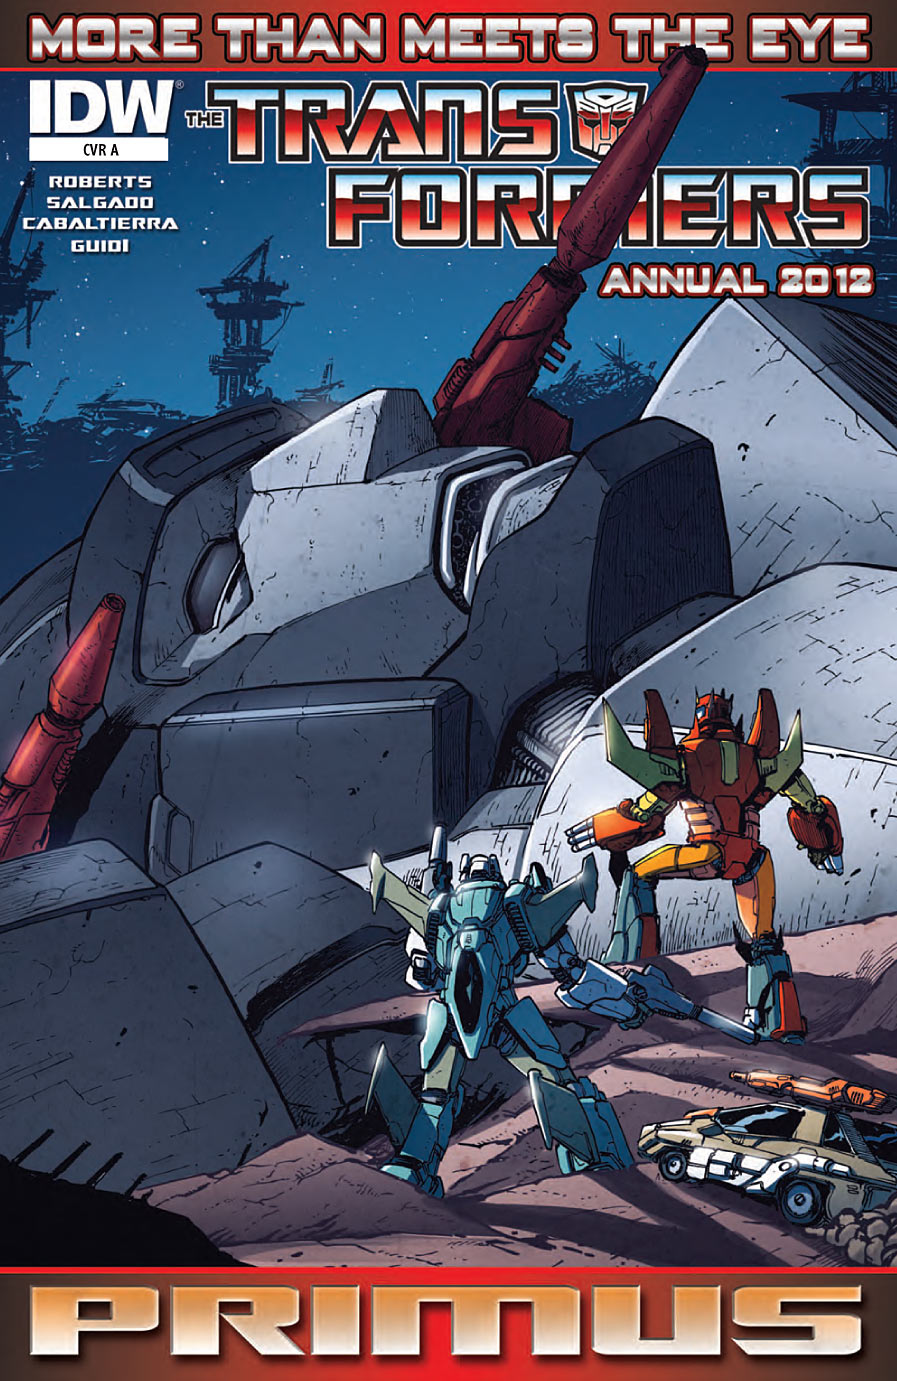 transformers-comics-more-than-meets-the-eye-annual-2012-cover-a Transformers More Than Meets the Eye Annual 2012